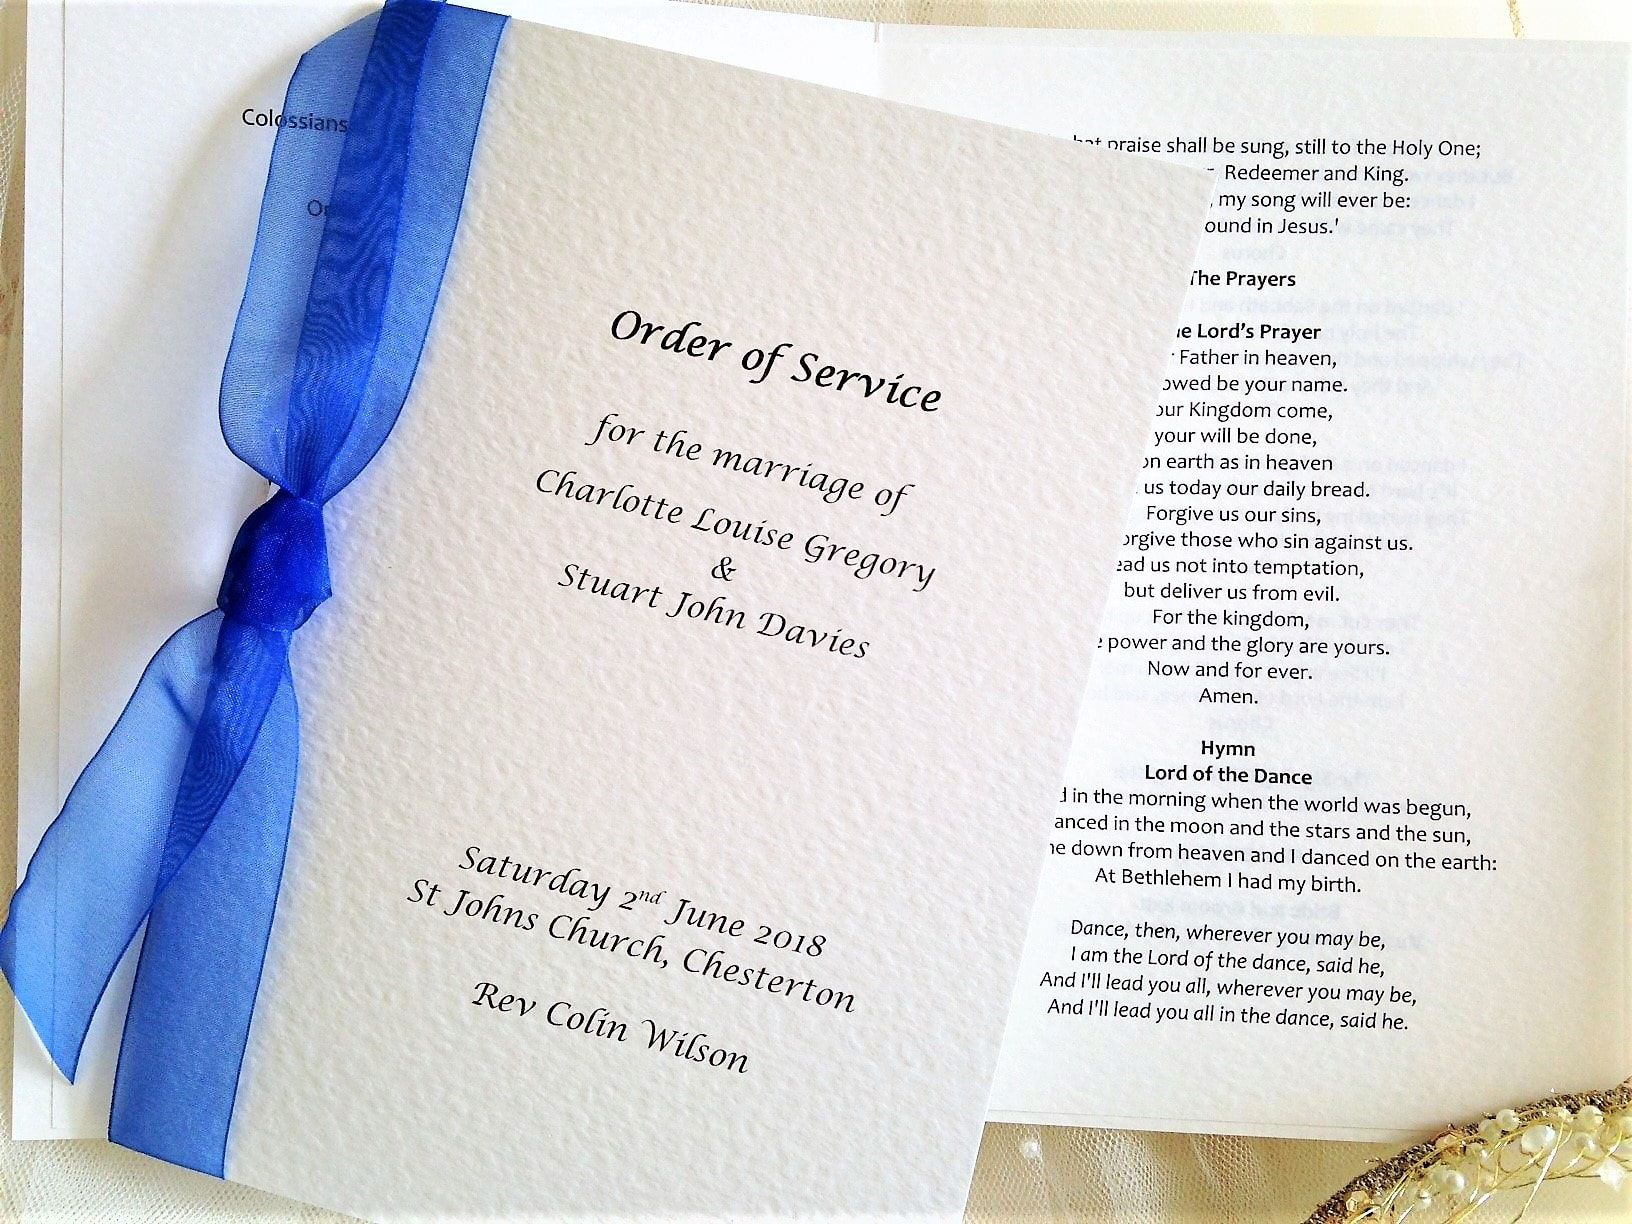 004 Top Traditional Wedding Order Of Service Template Uk High Def Full